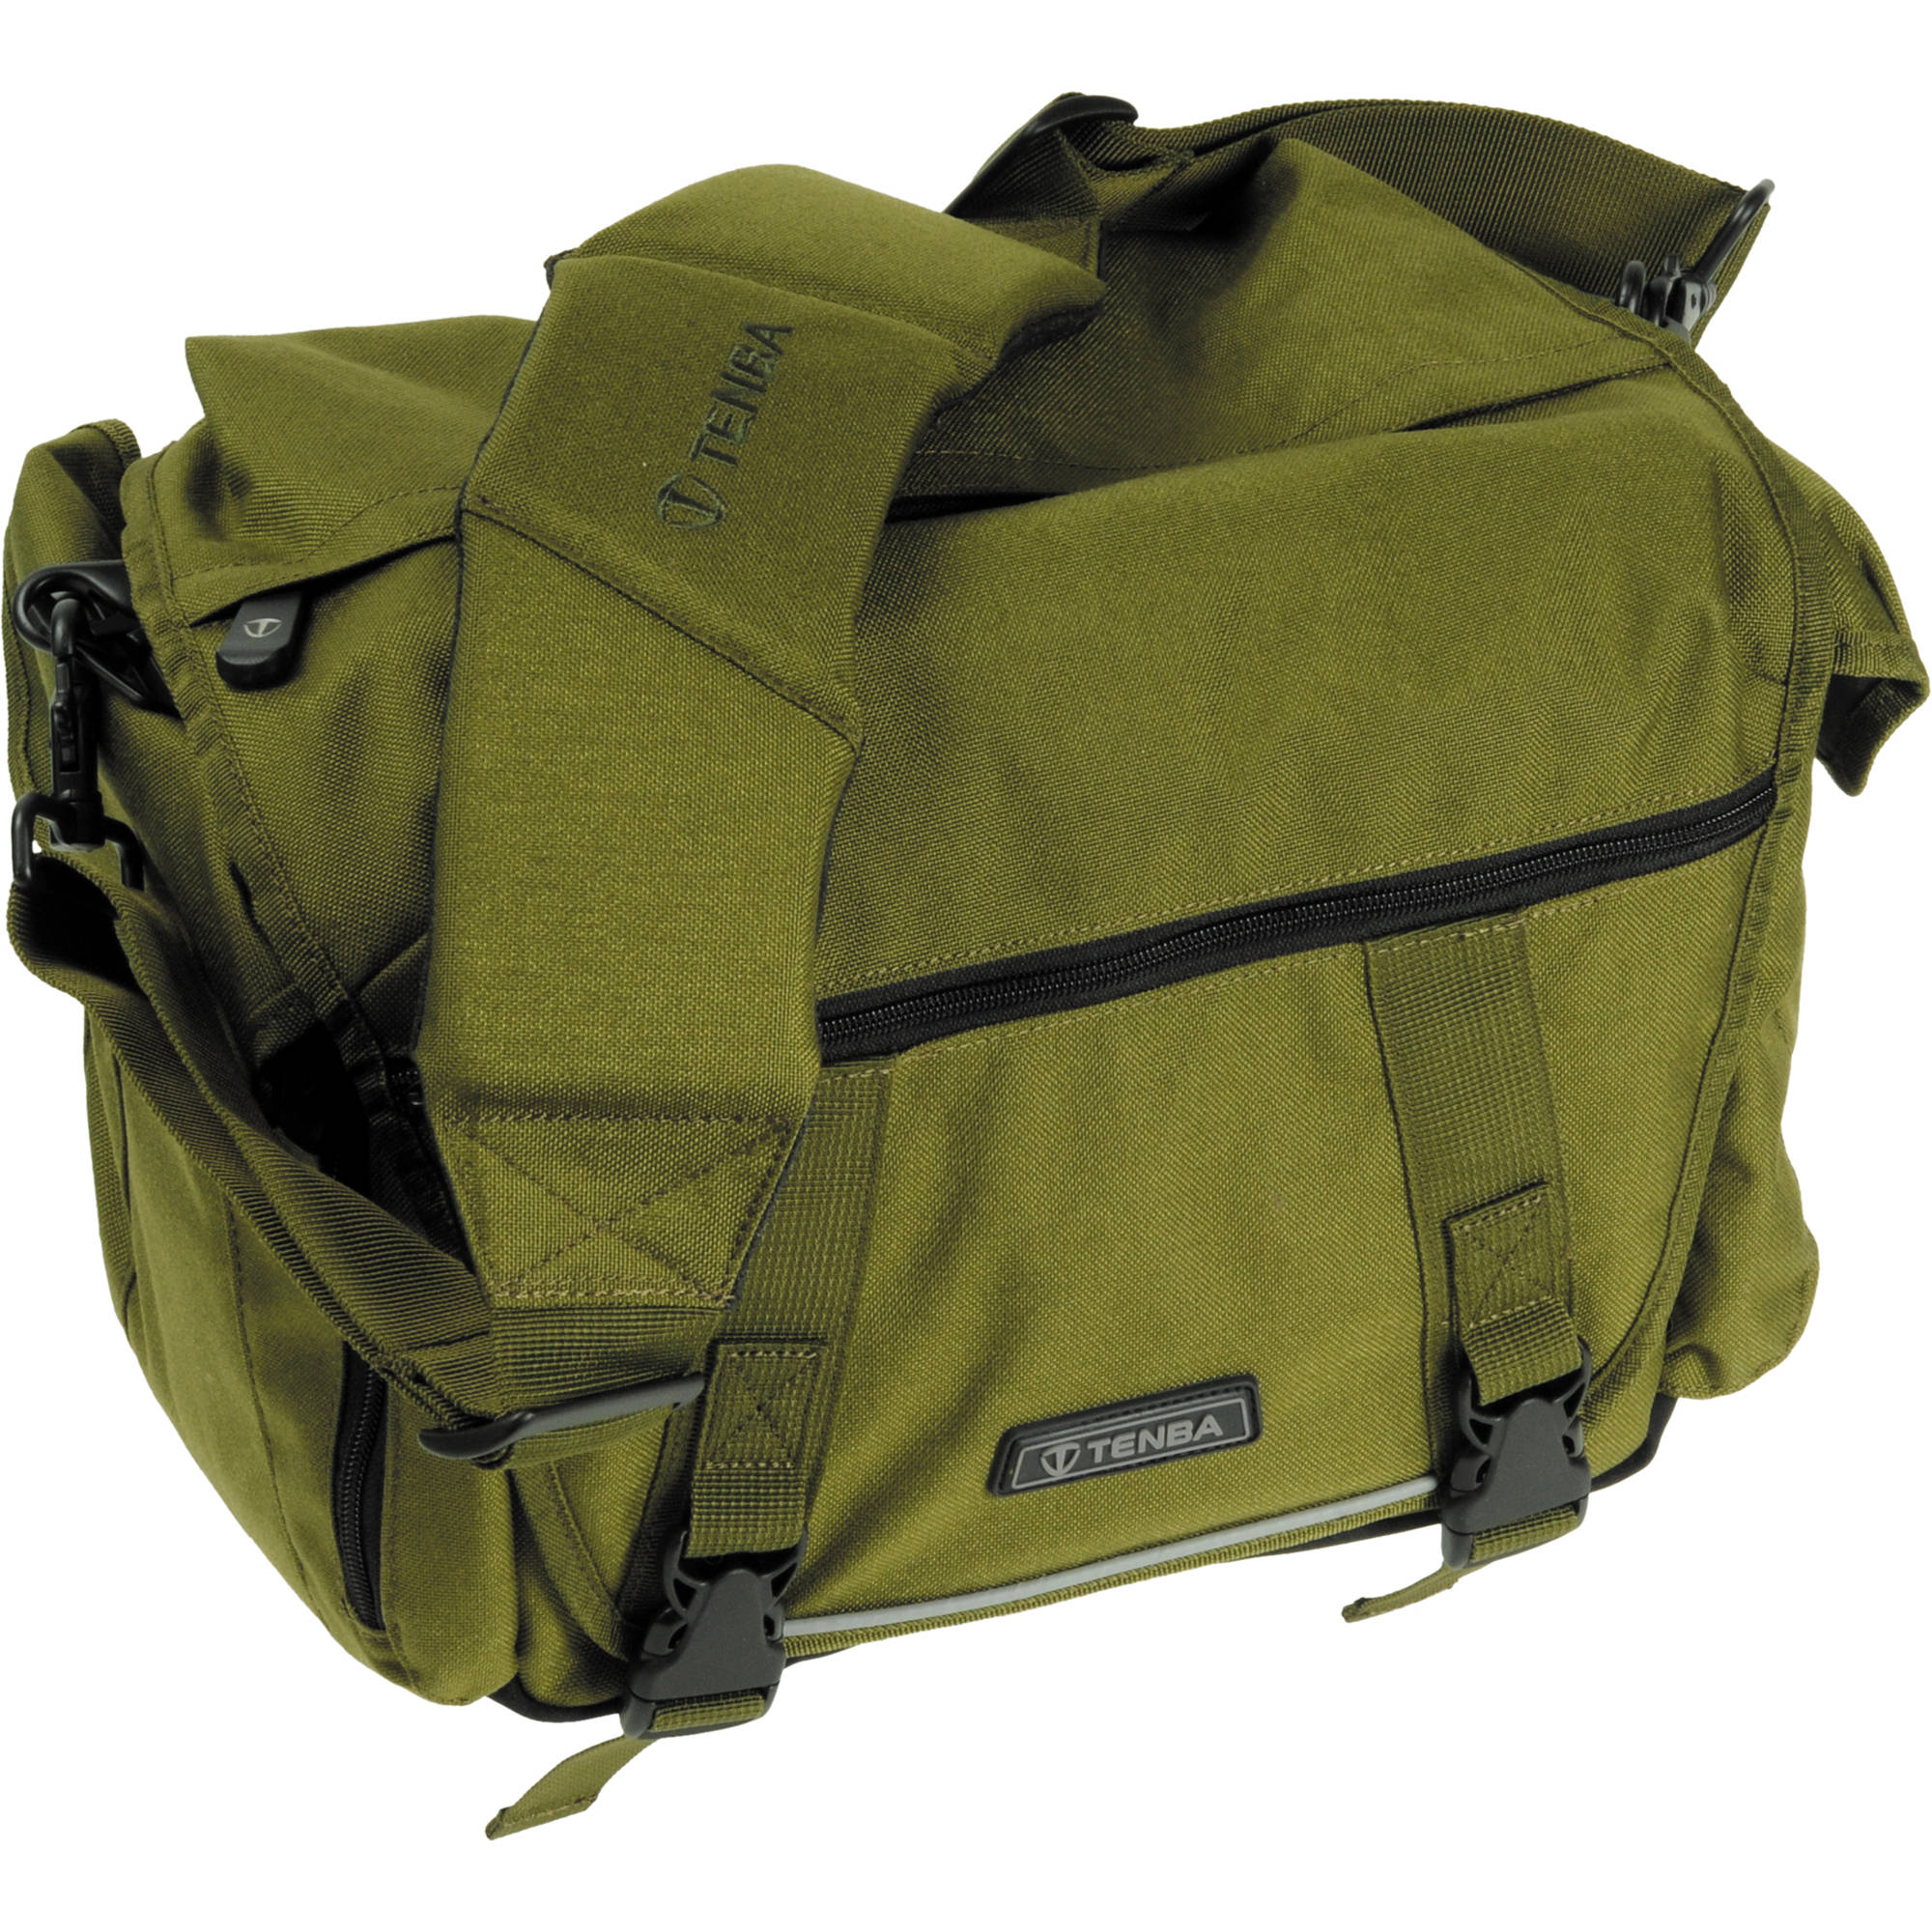 Tenba Messenger Camera Bag Olive Green